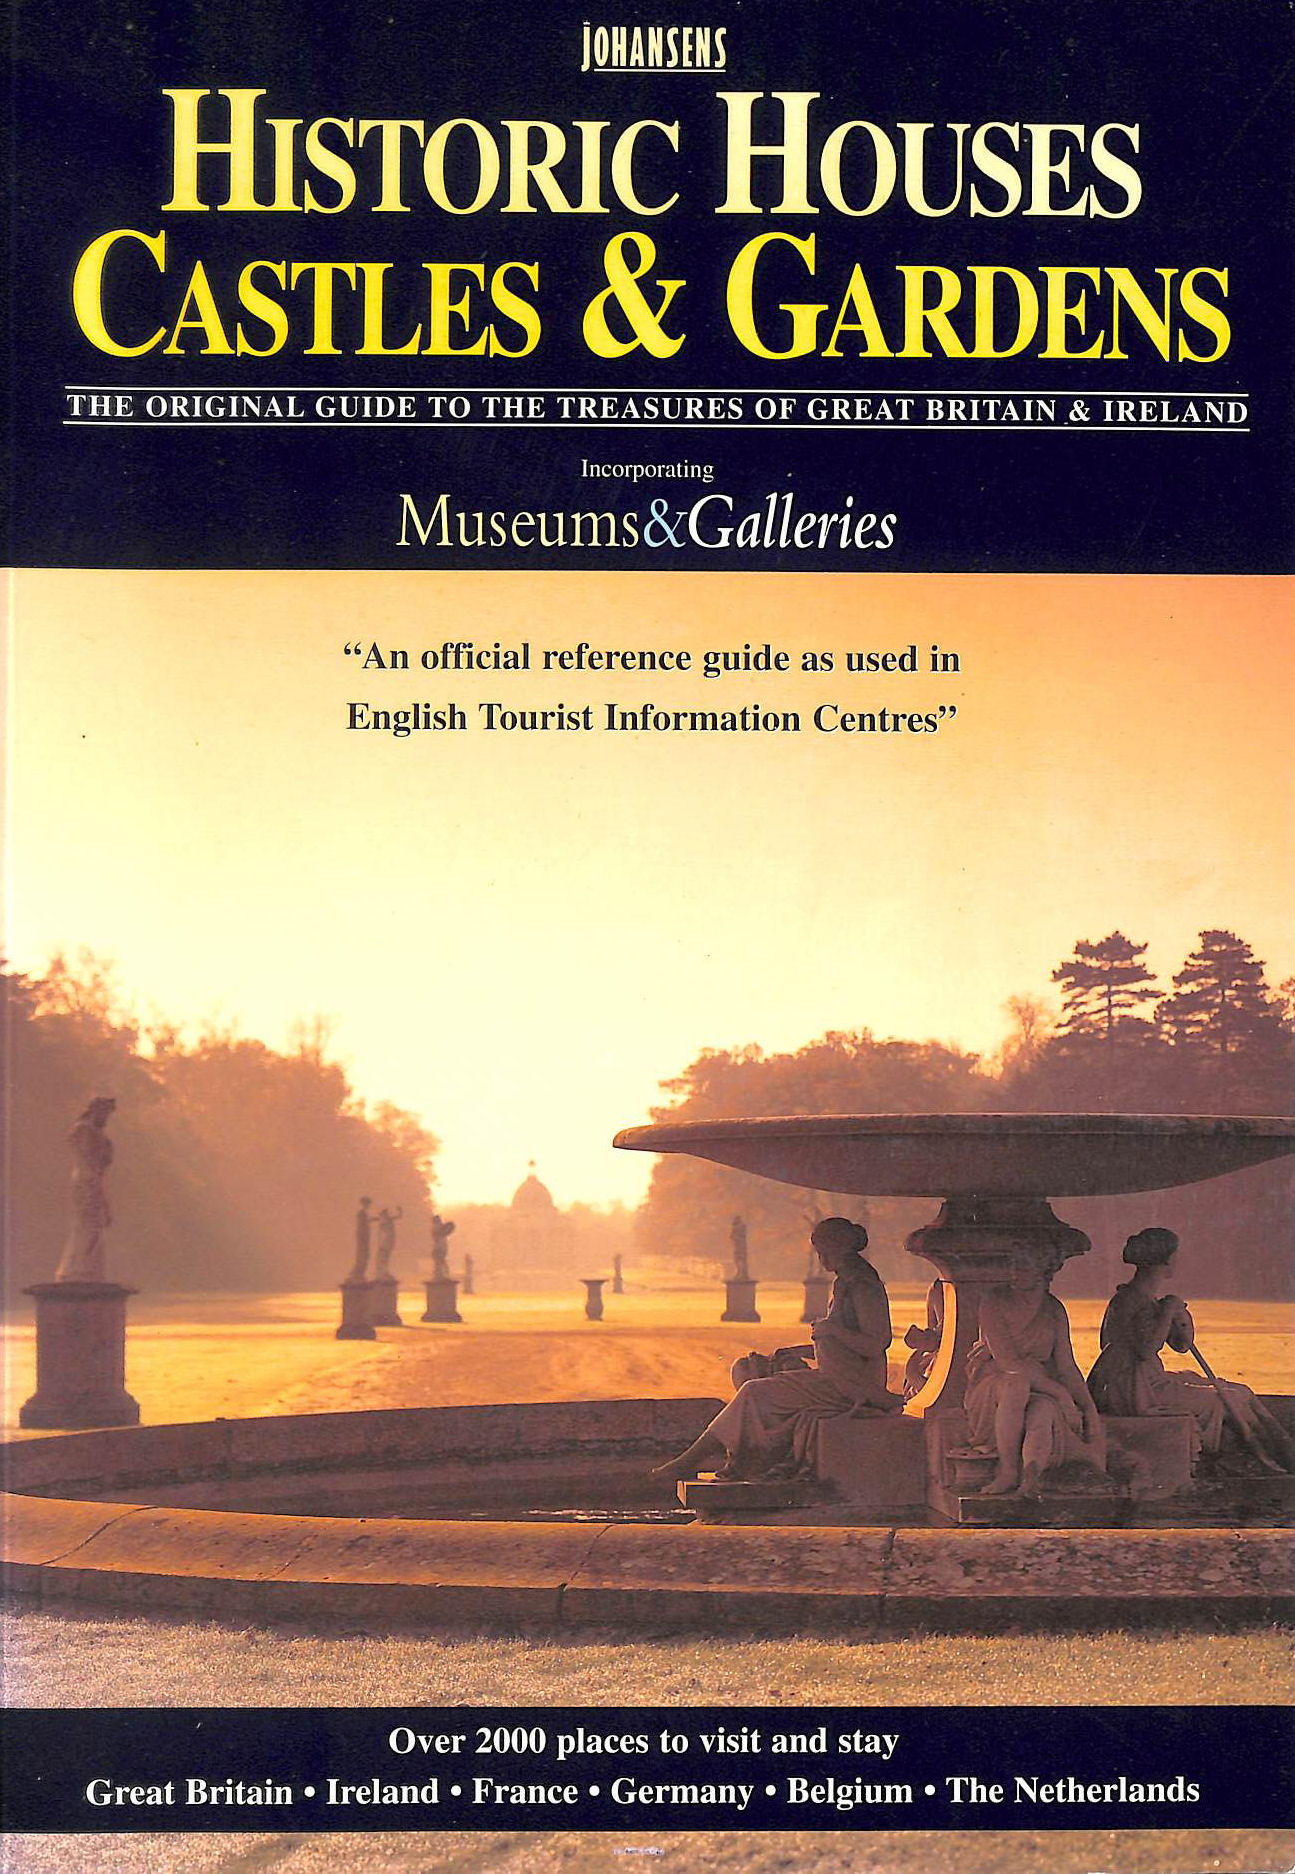 Image for Johansens Historic Houses, Castles and Gardens 2001: Incorporating Museums and Galleries (Historic Houses, Castles and Gardens, Museums and Galleries, Great Britain and Ireland)